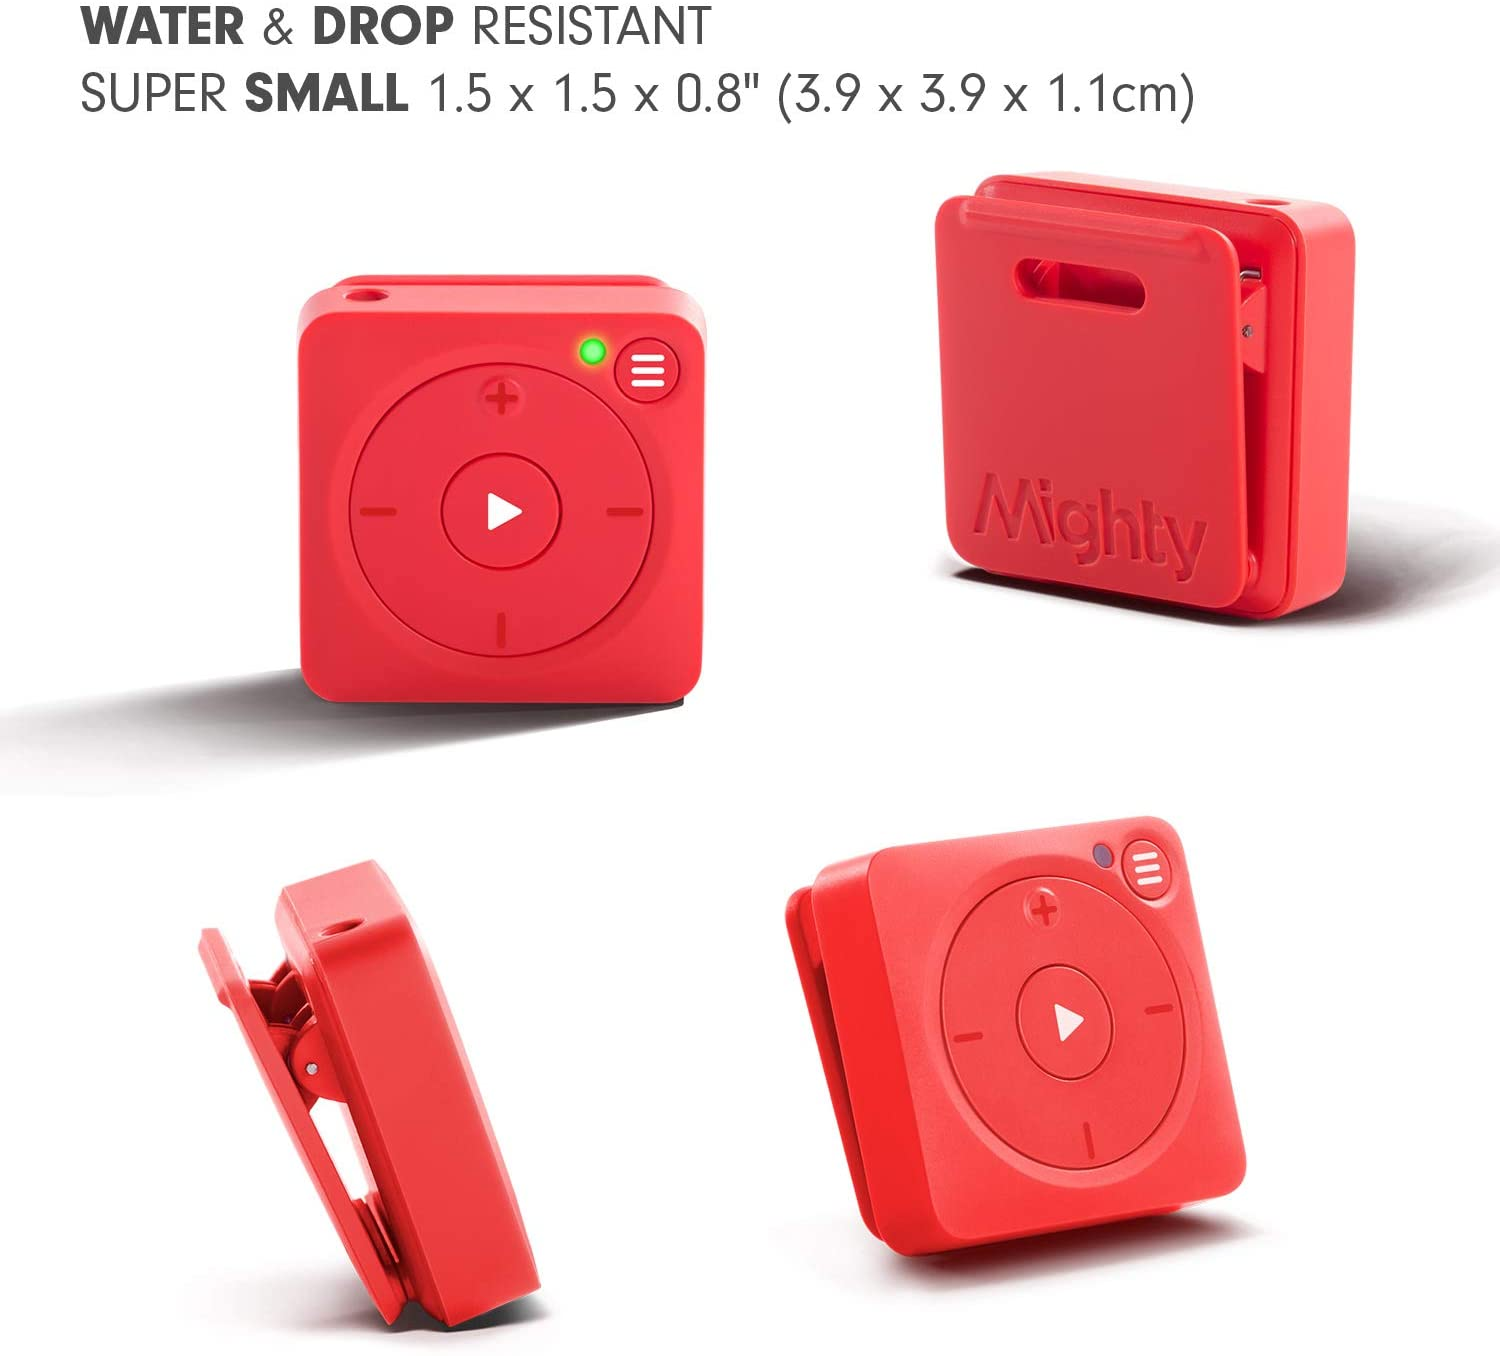 Bluetooth /& Wired Headphones Mighty Vibe Spotify Music Player Mooshu Red No Phone Needed 8GB Storage